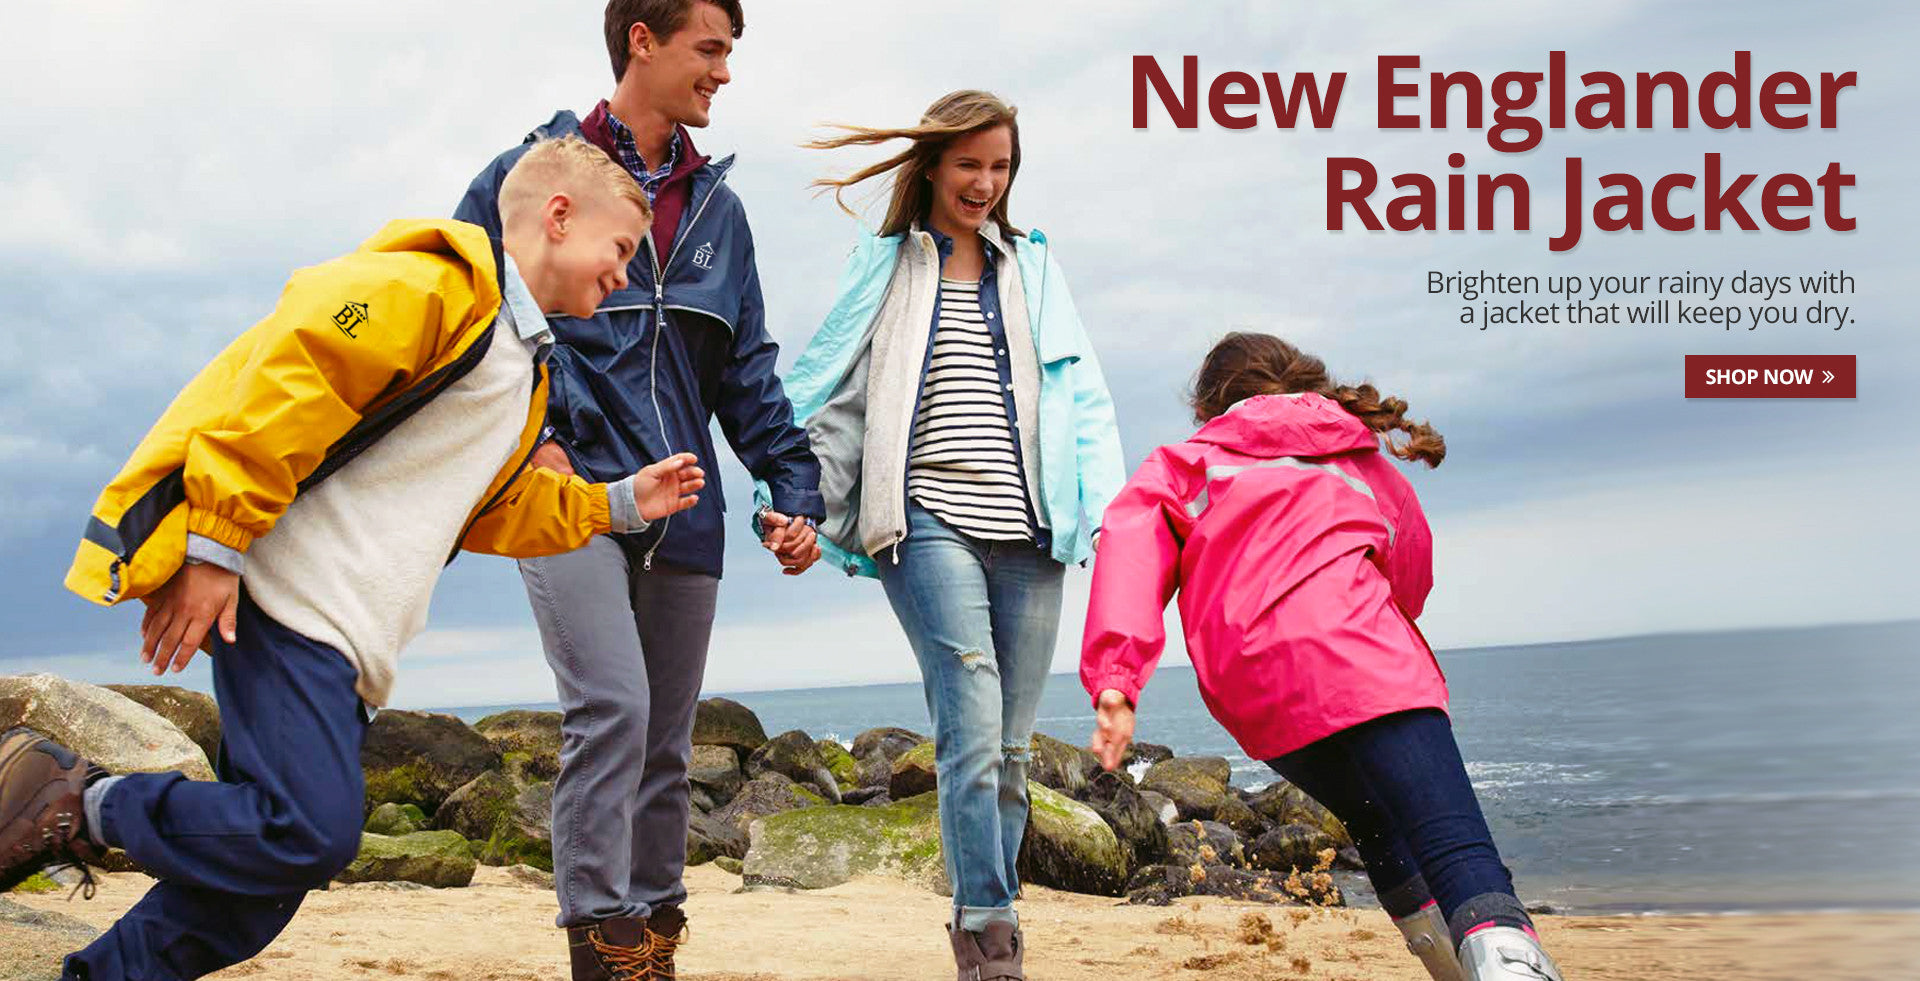 Barnlife New Englander Rain Jacket